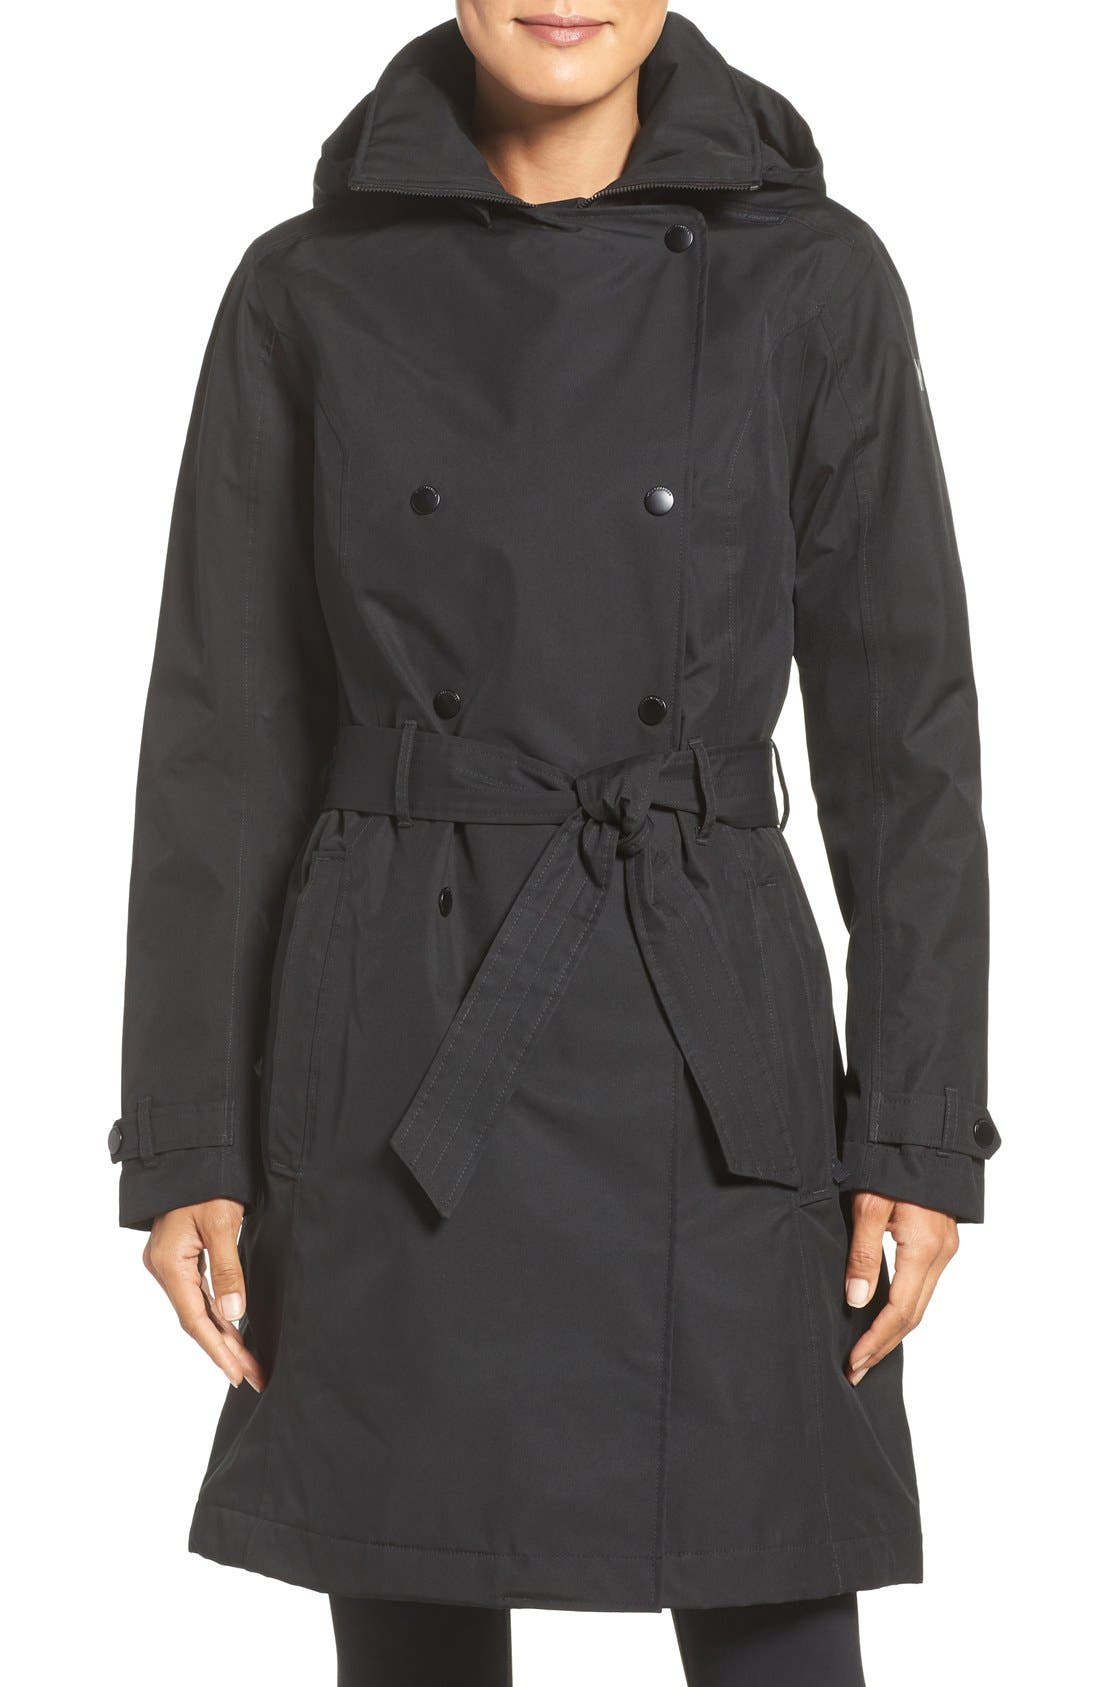 'Welsey' Insulated Waterproof Trench Coat,                         Main,                         color, 001